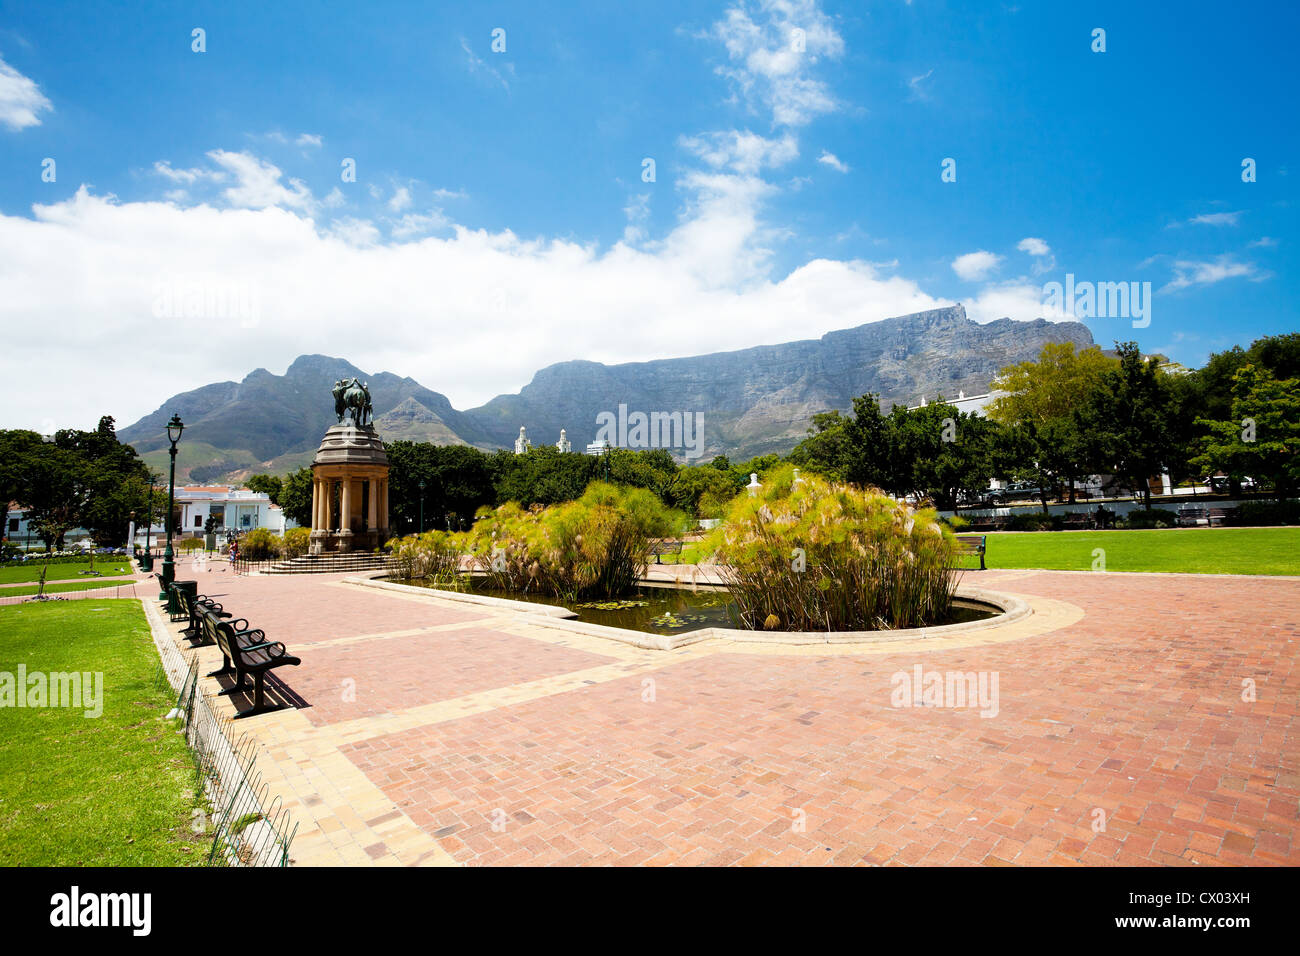 company's garden, cape town, south africa - Stock Image